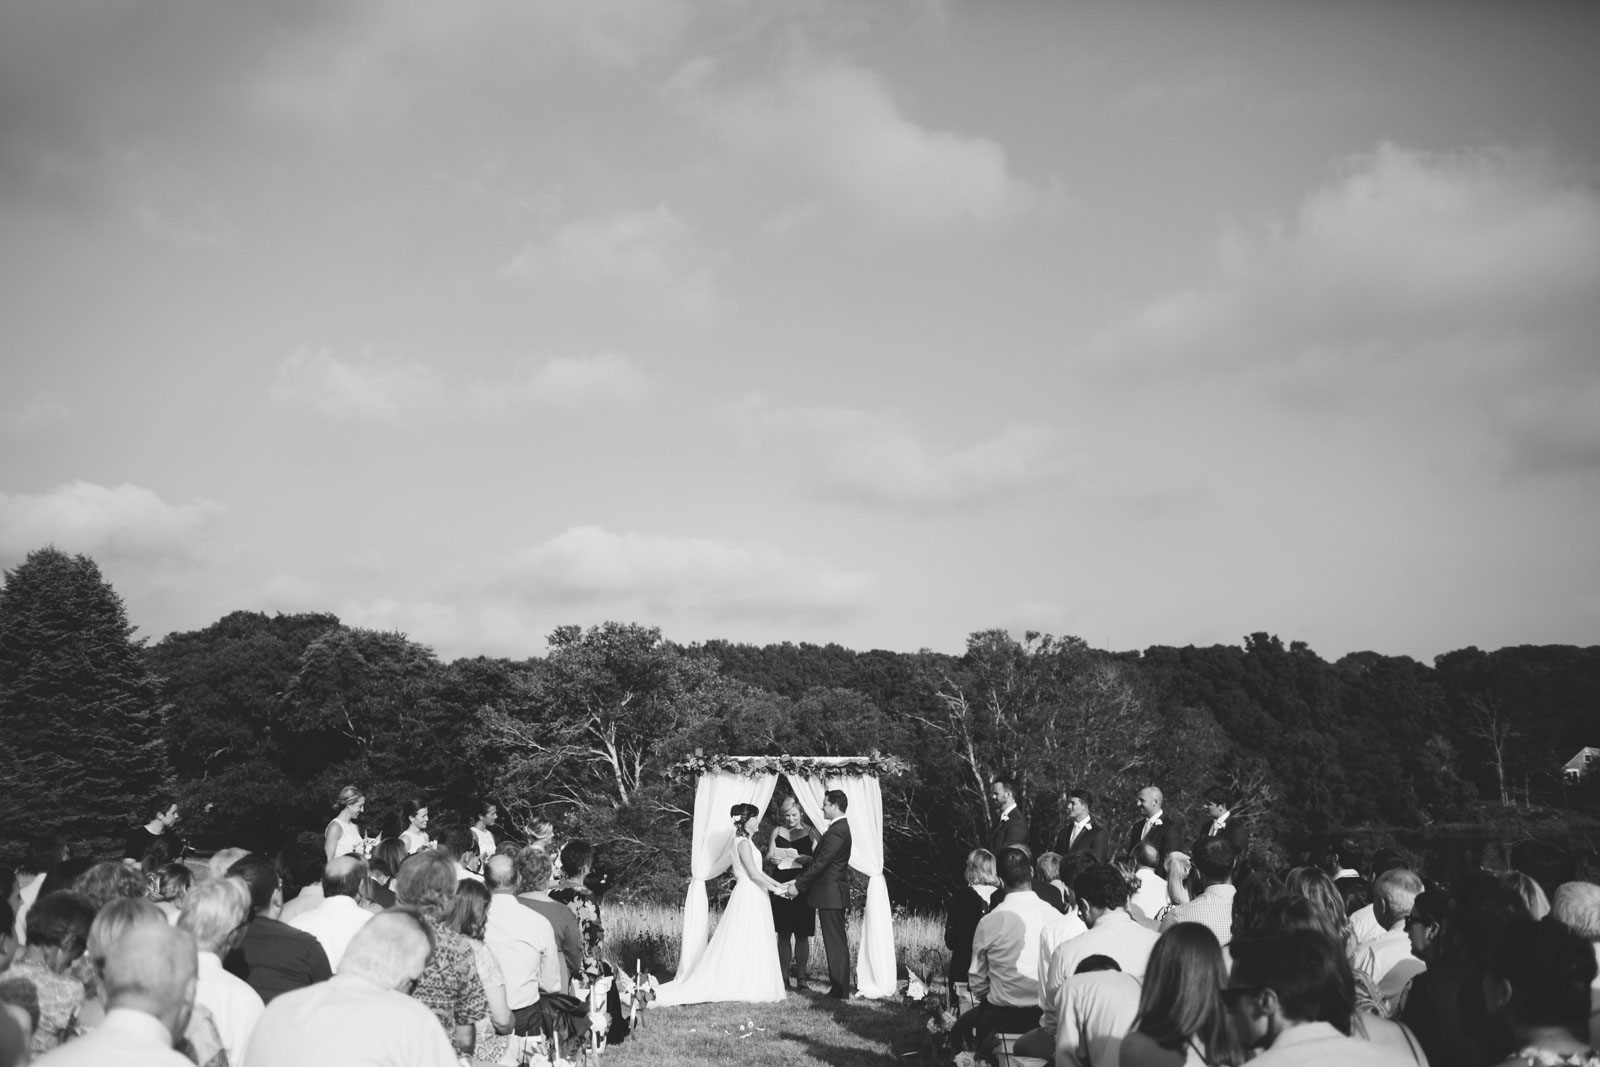 Wide view of wedding ceremony from the back, bride and groom holding hands, black and white